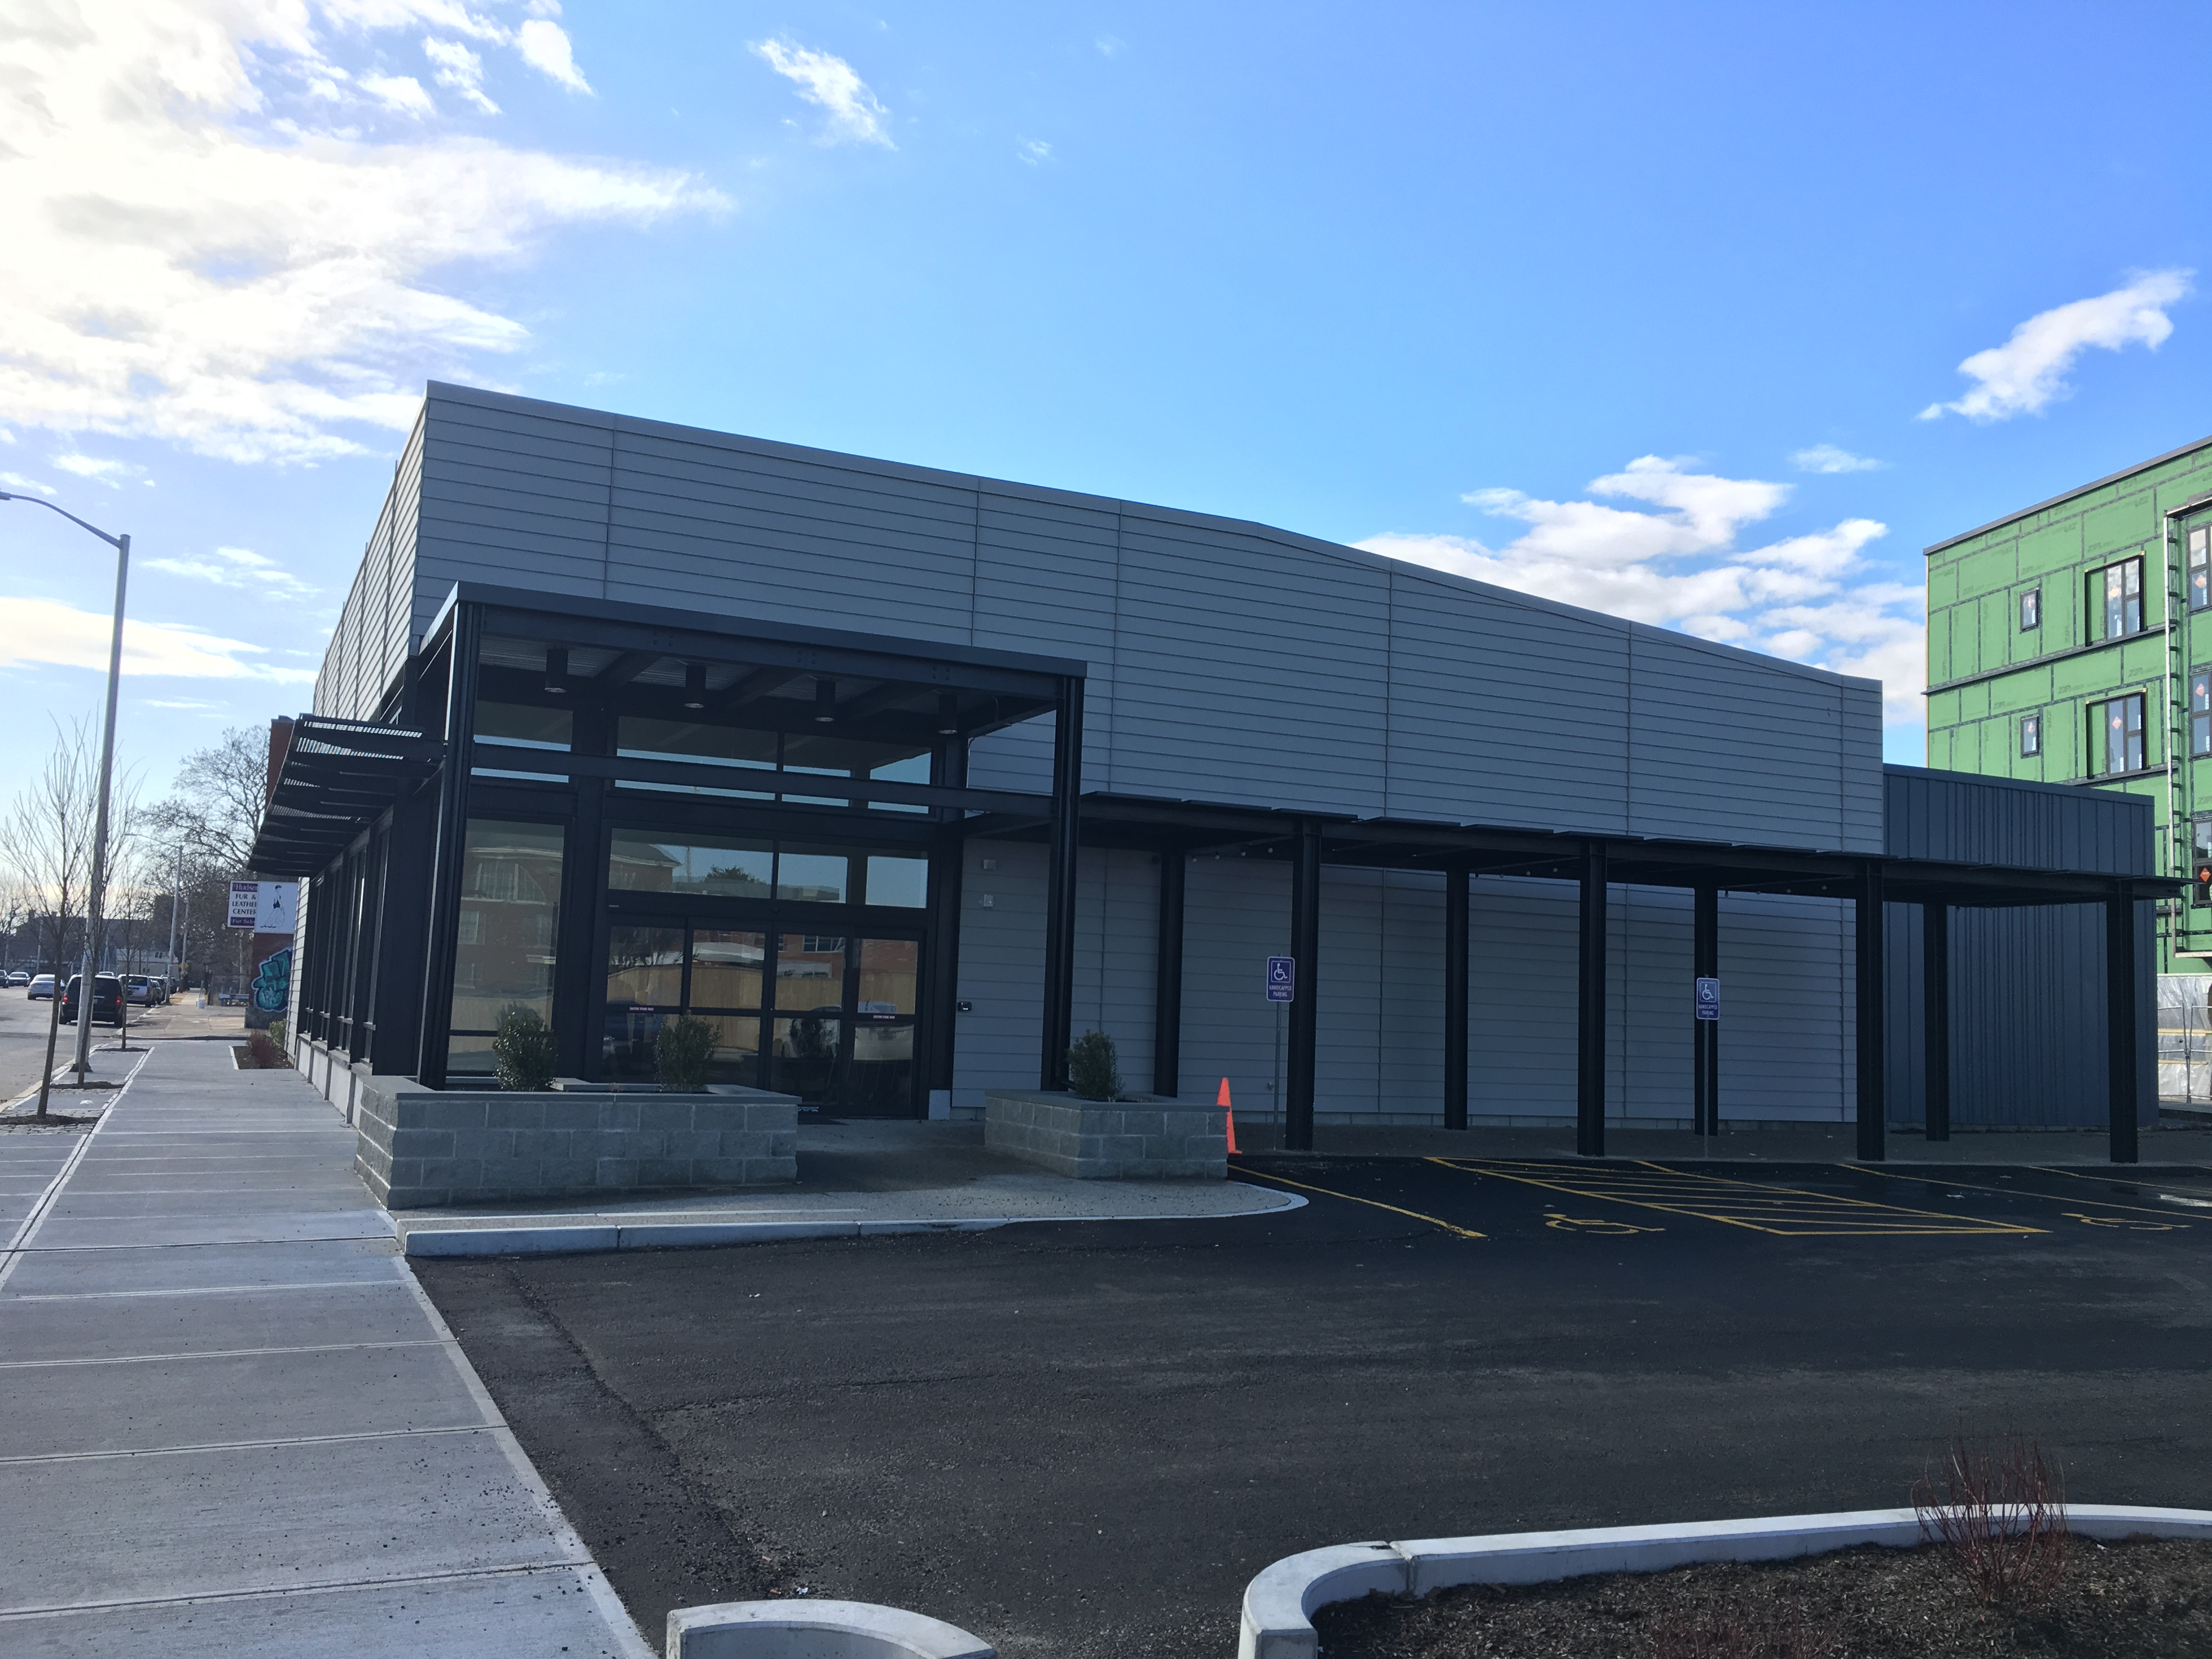 Construction is nearly complete on the Urban Greens Food Co-op building at 93 Cranston St. in Providence.